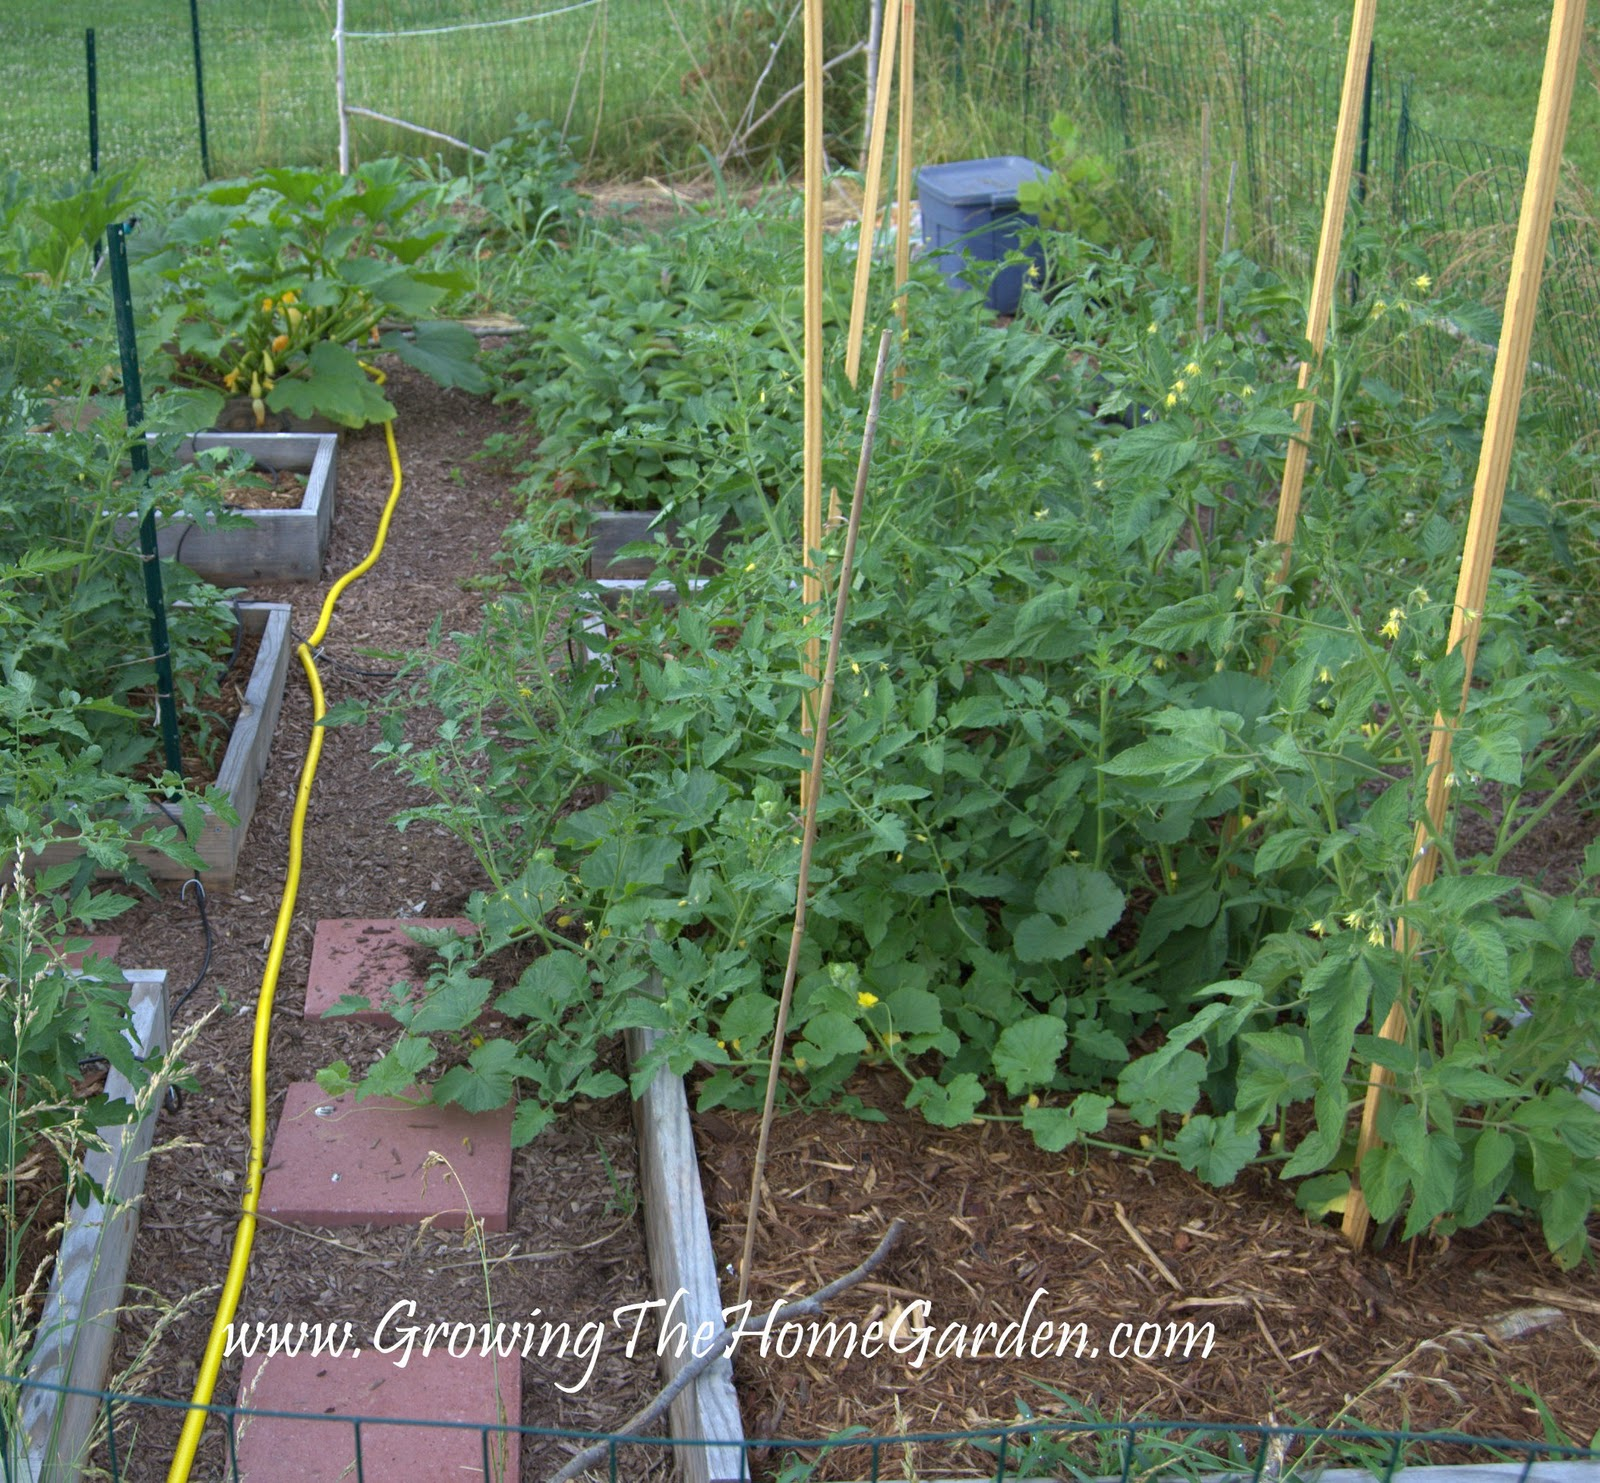 Growing The Home Garden 11 Tips to Consider When